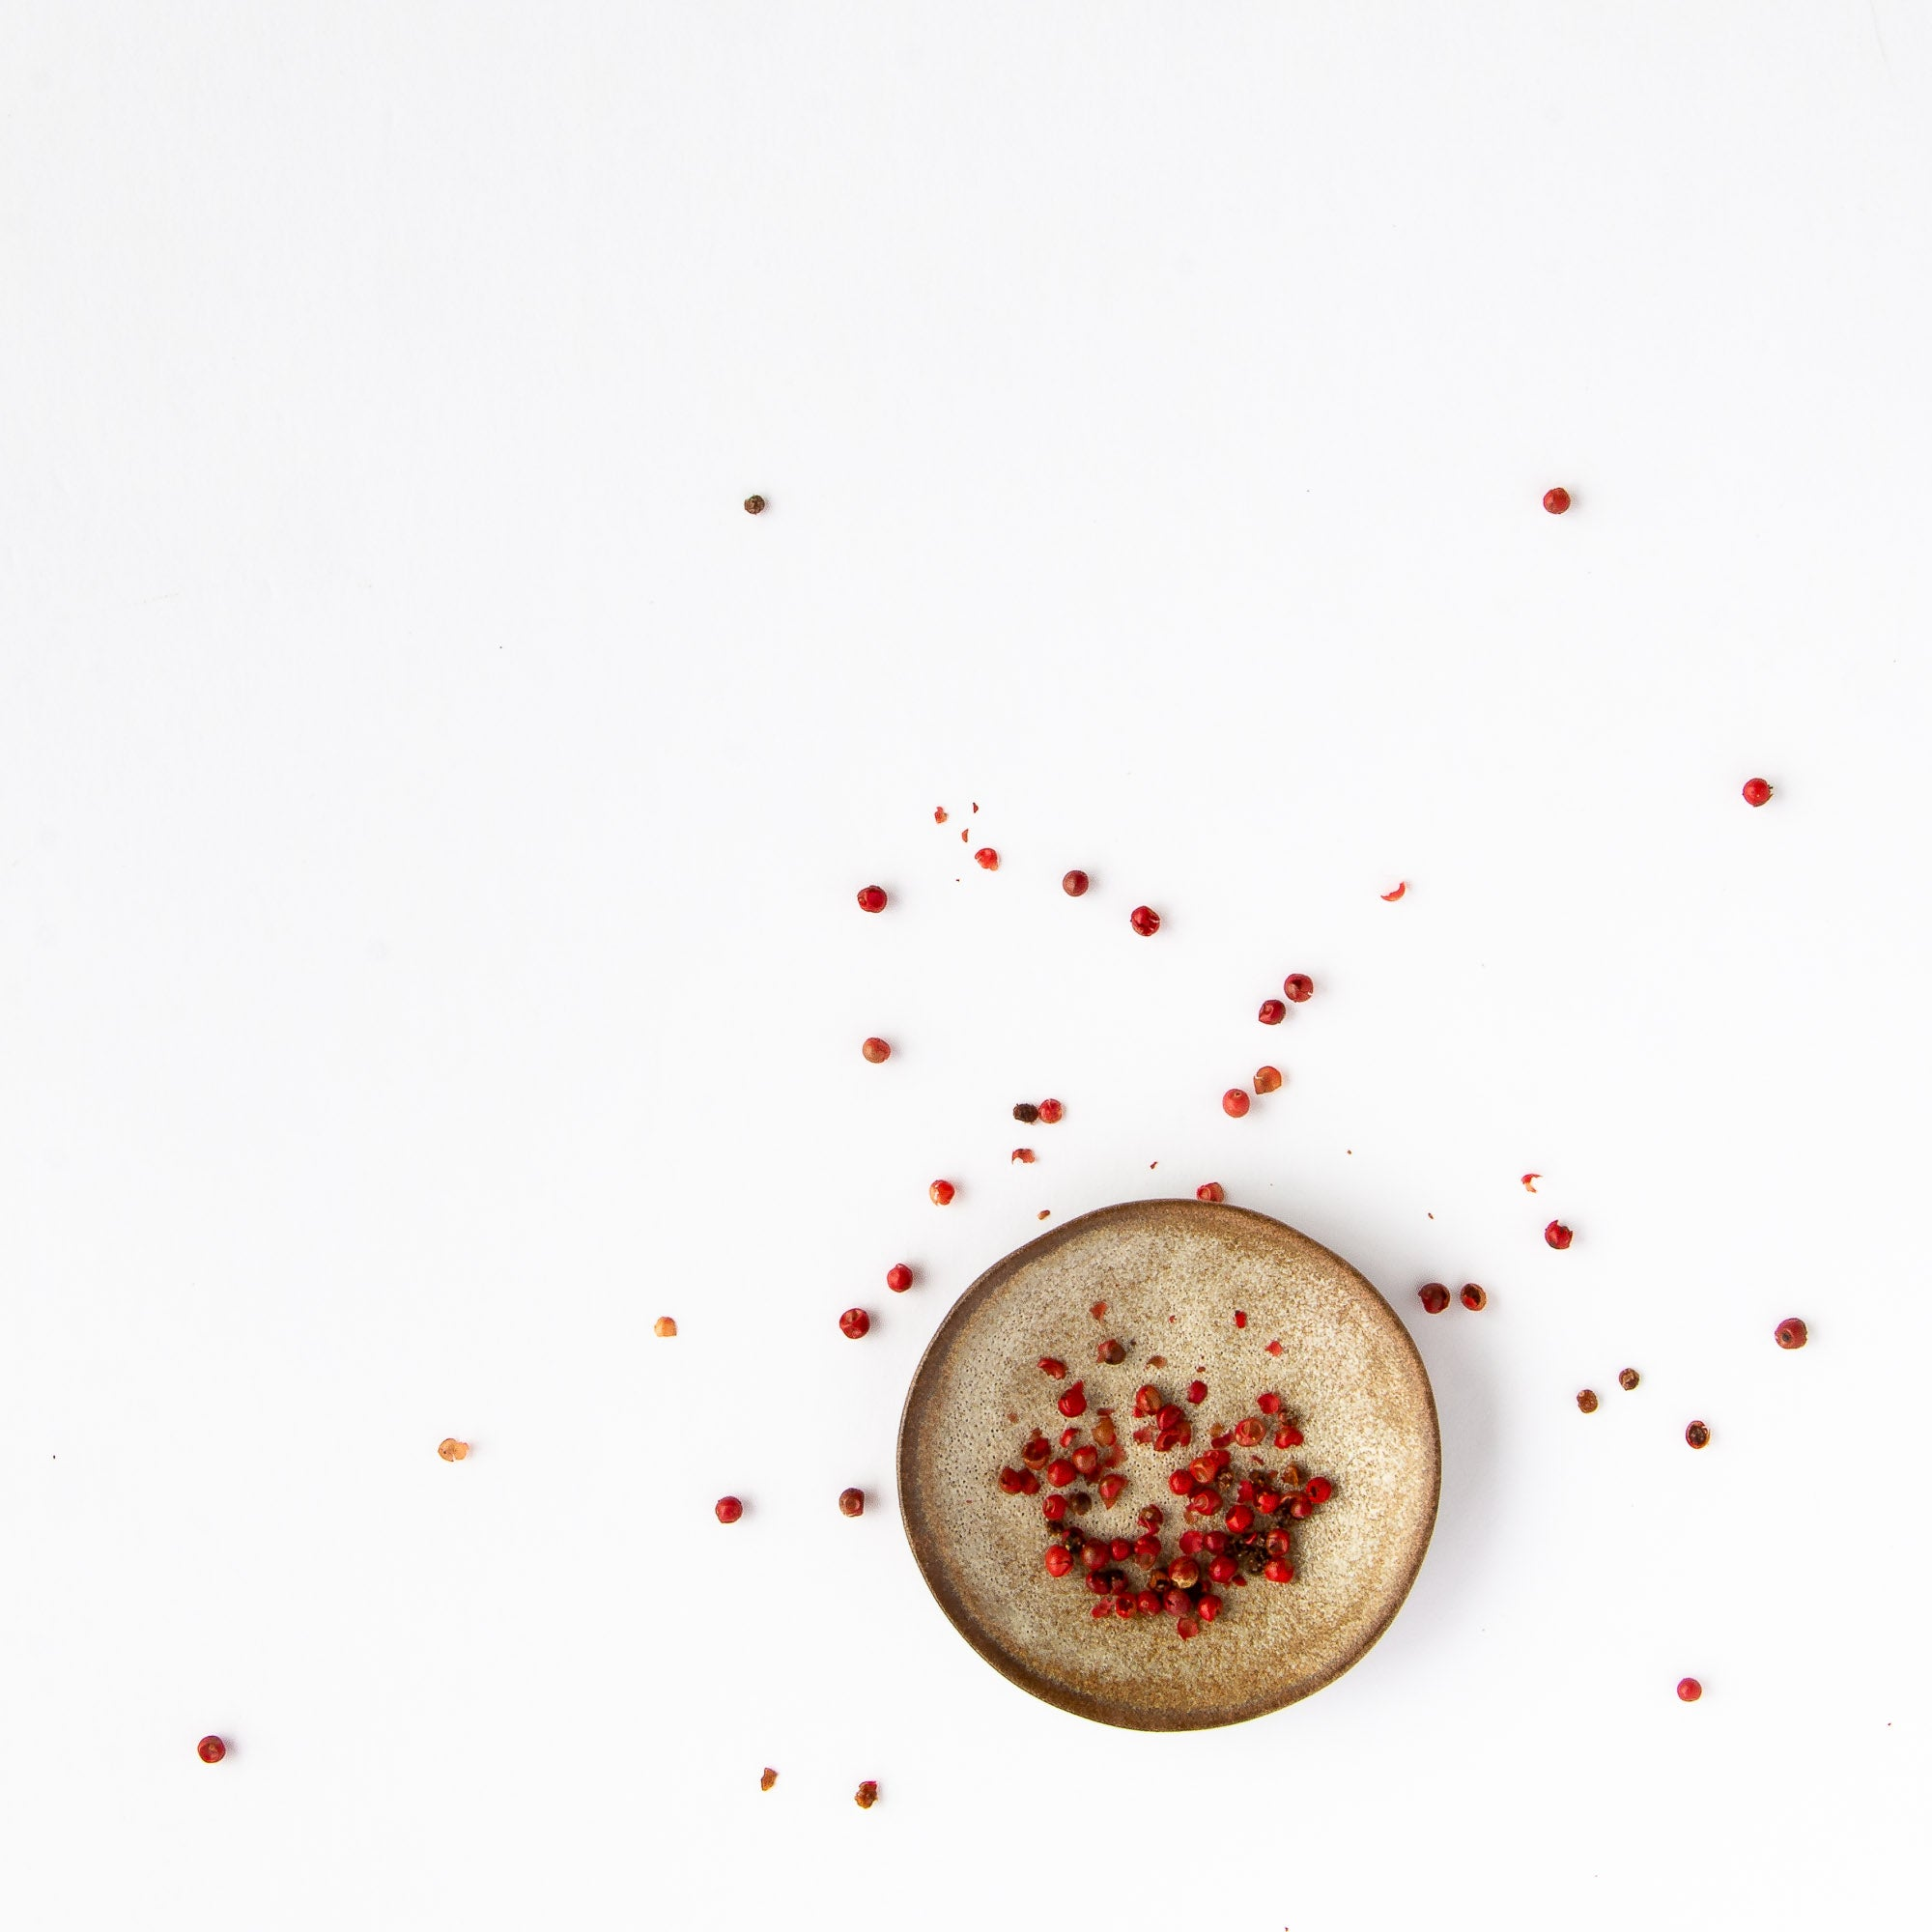 Handcrafted Small Dishes in Black Stoneware Shown with Red Peppercorns - Sold by Chic & Basta